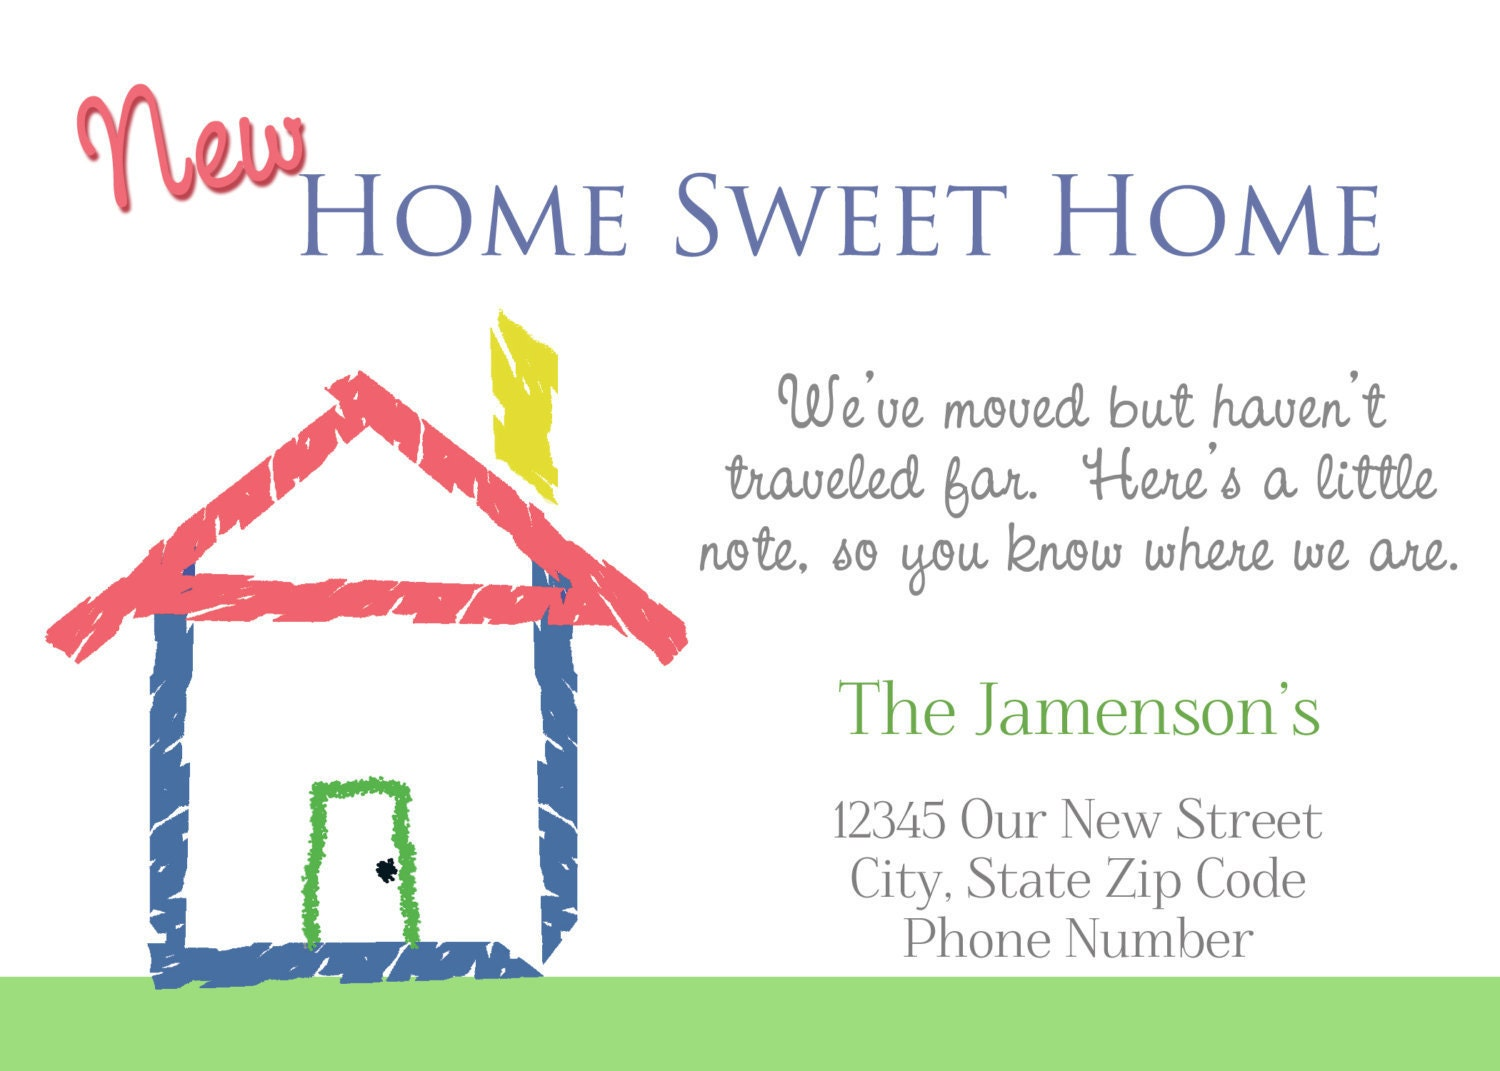 House warming ceremony invitation card templates putputfo house warming ceremony invitation card templates as adorable invitations template stopboris Gallery